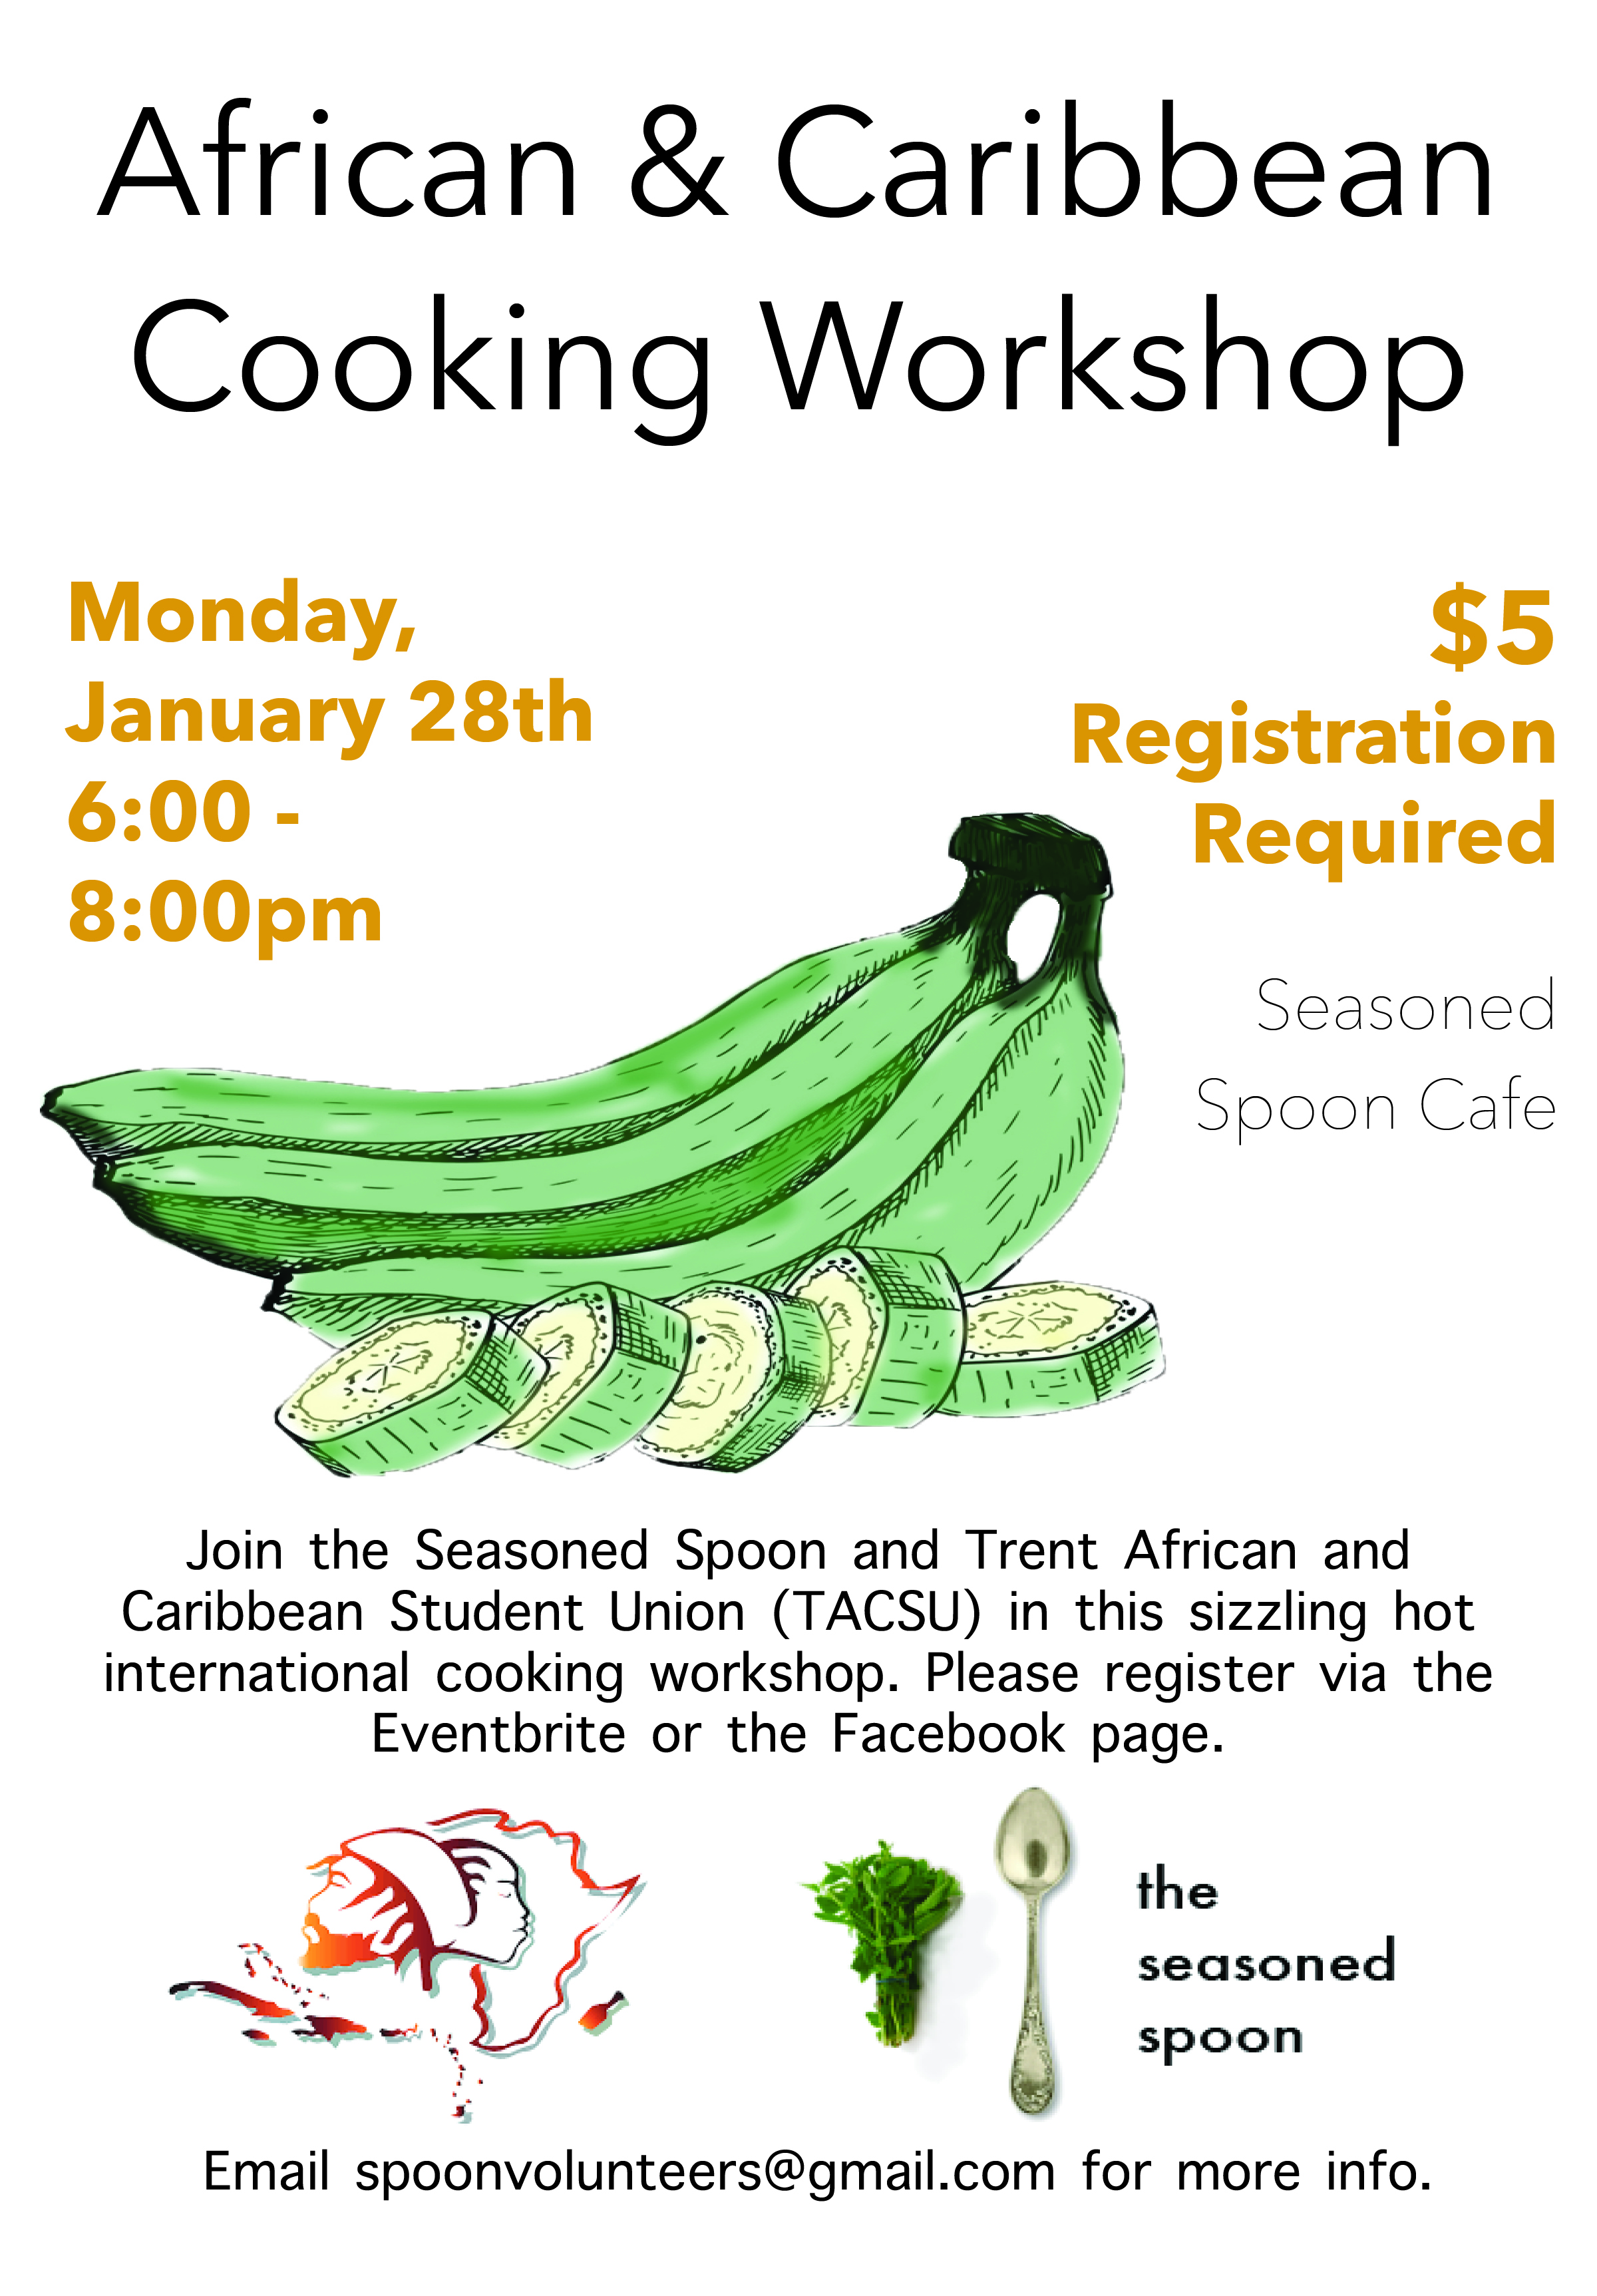 illustration of a bunch of plantains, with one plantain chopped up in the front - over a white background, surrounded by text with event details